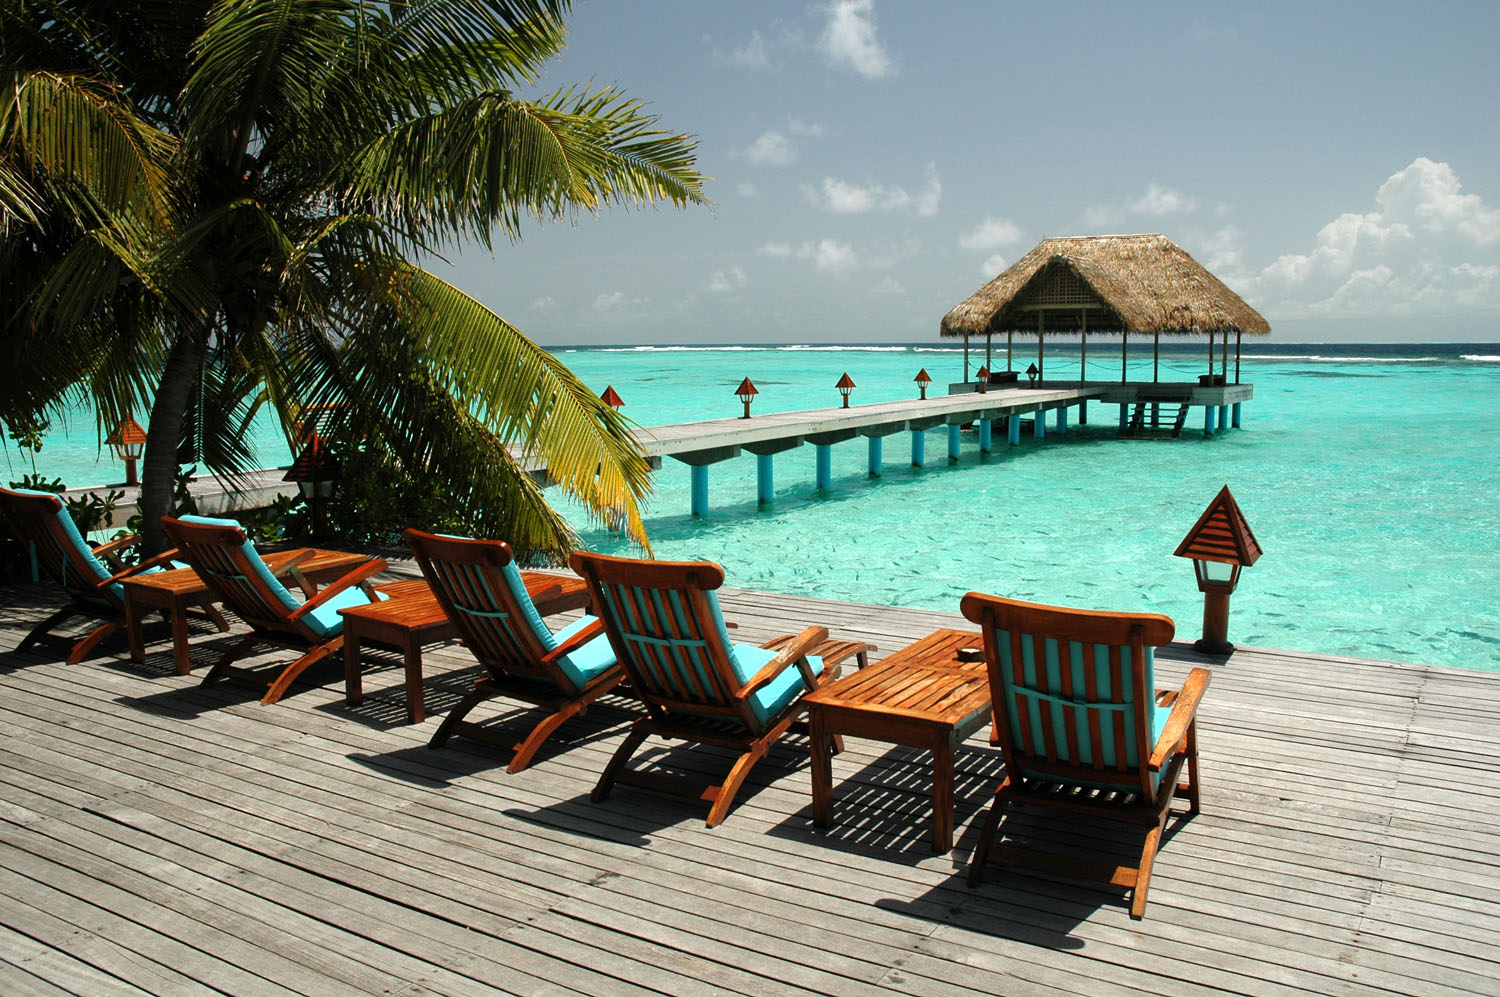 Terasa in Maldive